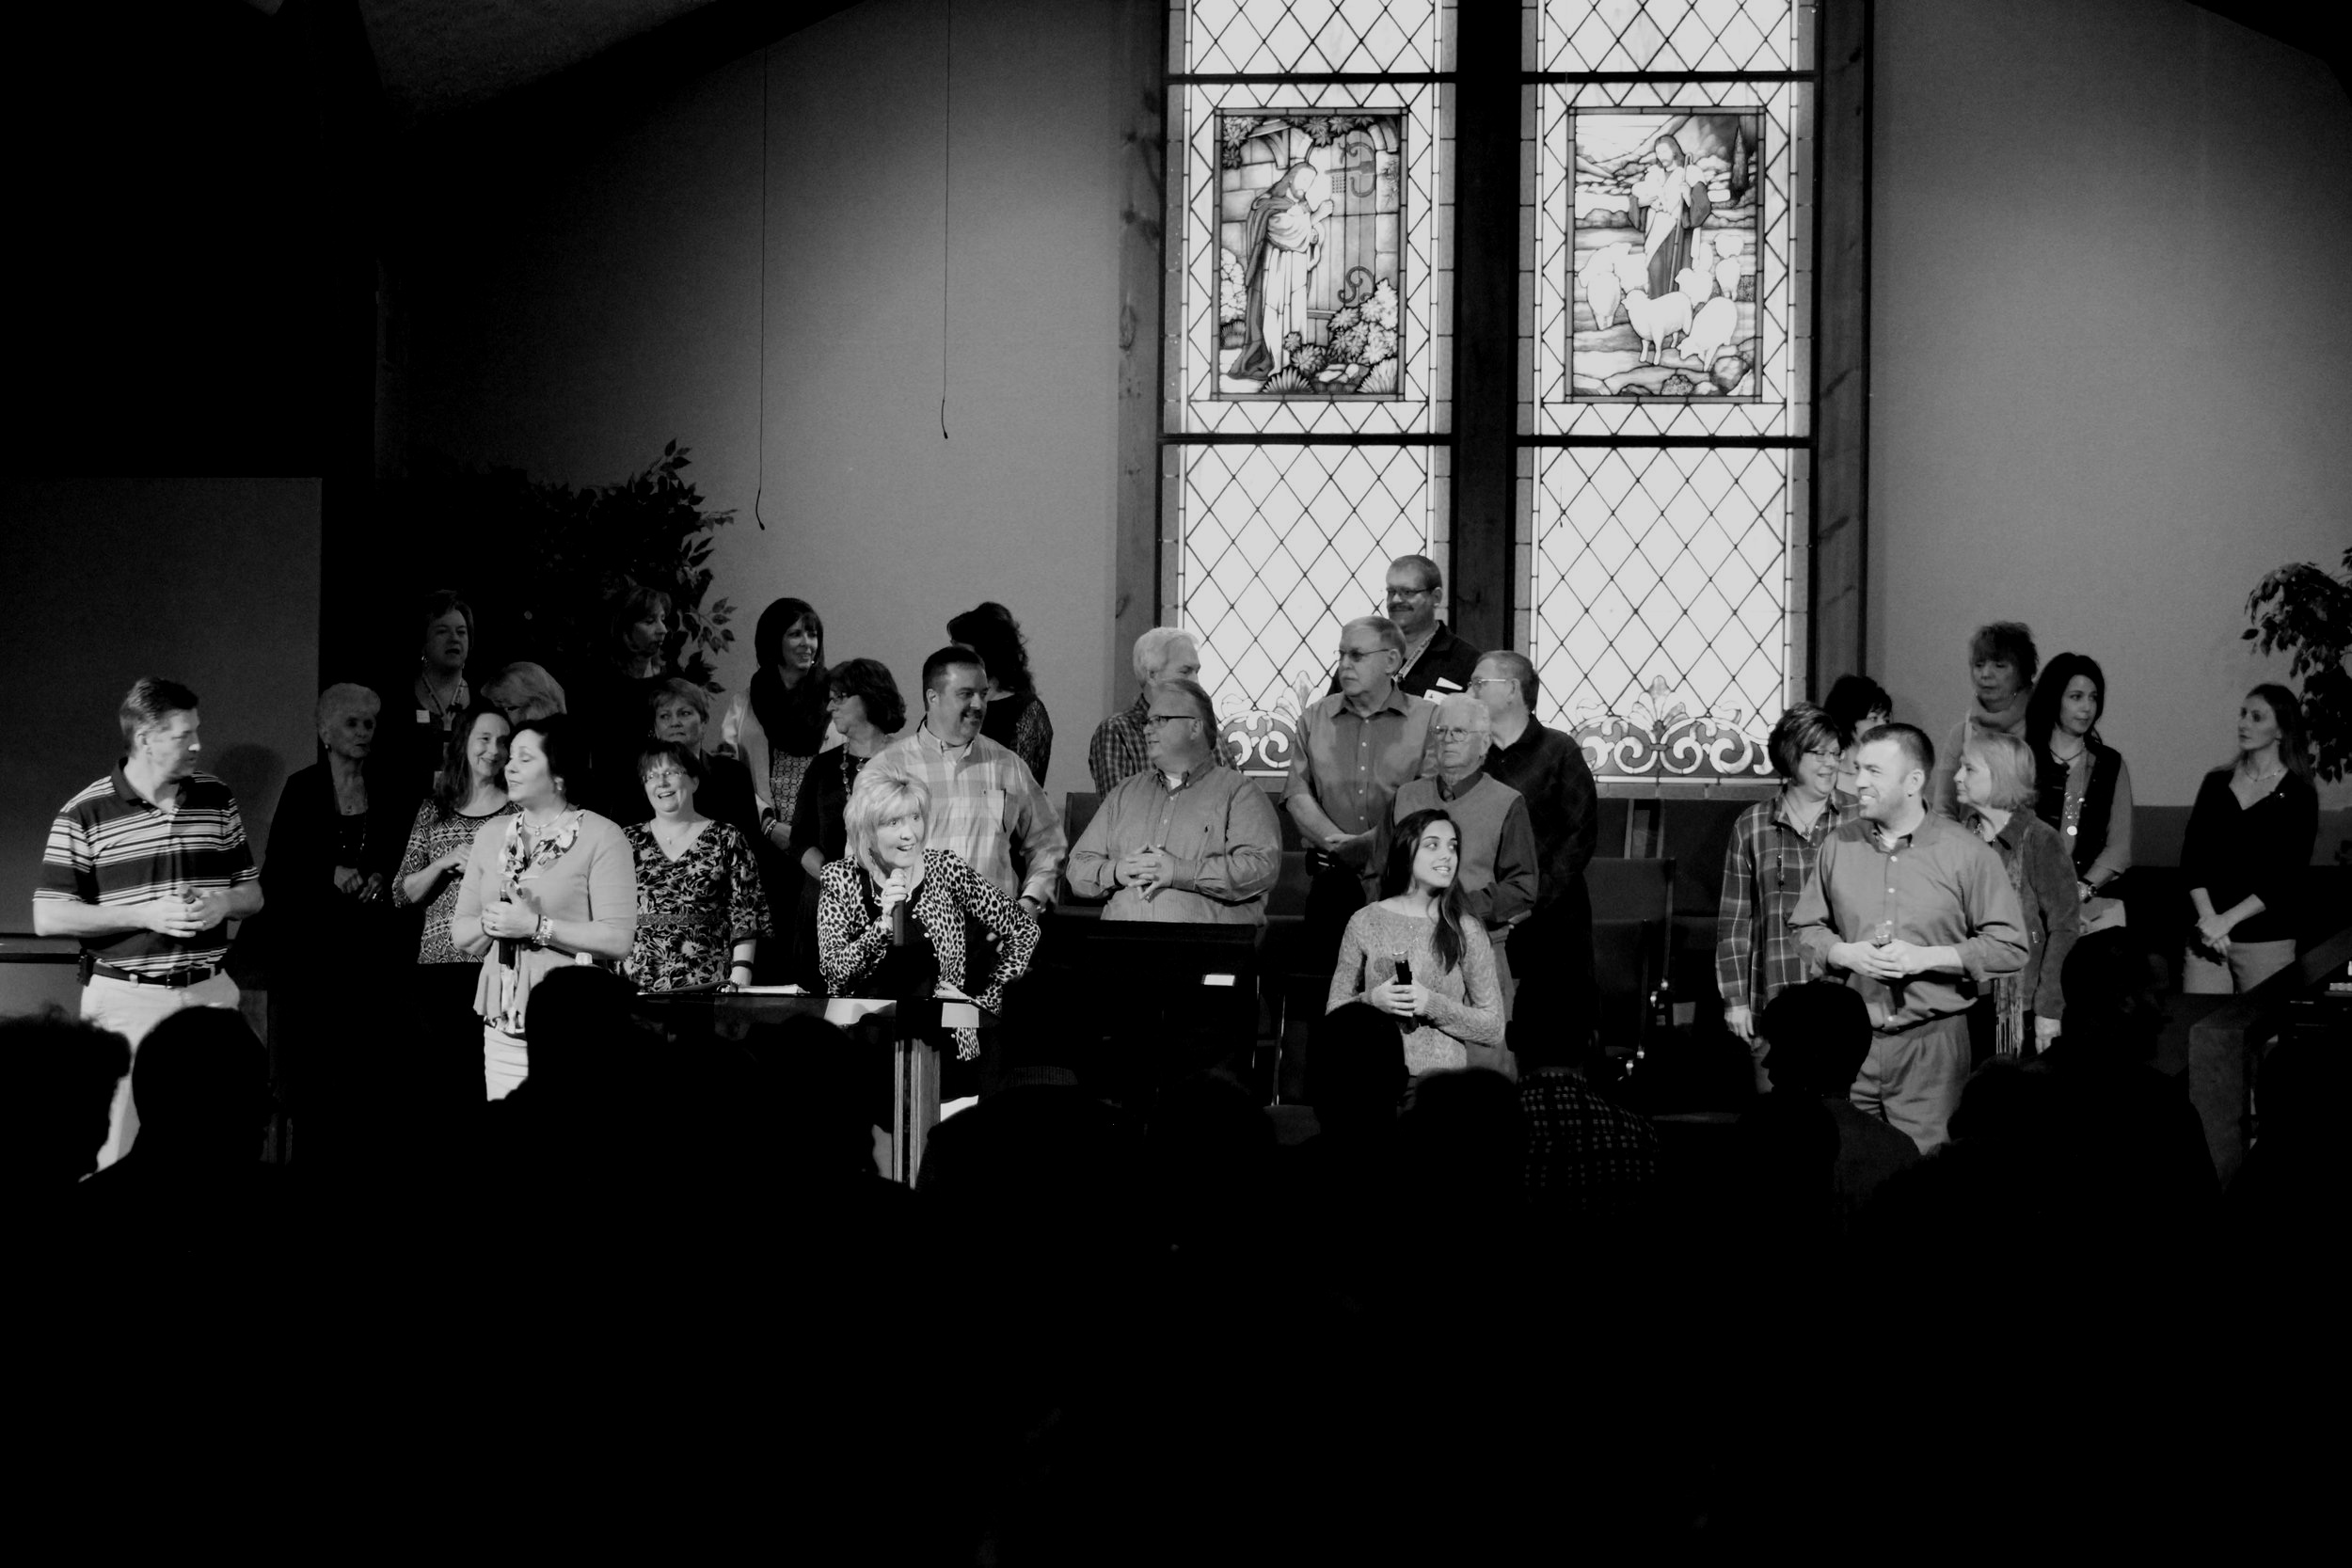 WHAT TO EXPECT - Brookside Church is a multi-generational church in Southern Ohio. We blend tradition with modern worship to create an experience that feels refreshing yet familiar. We would love for you to join us on Sundays at 10:15AM!